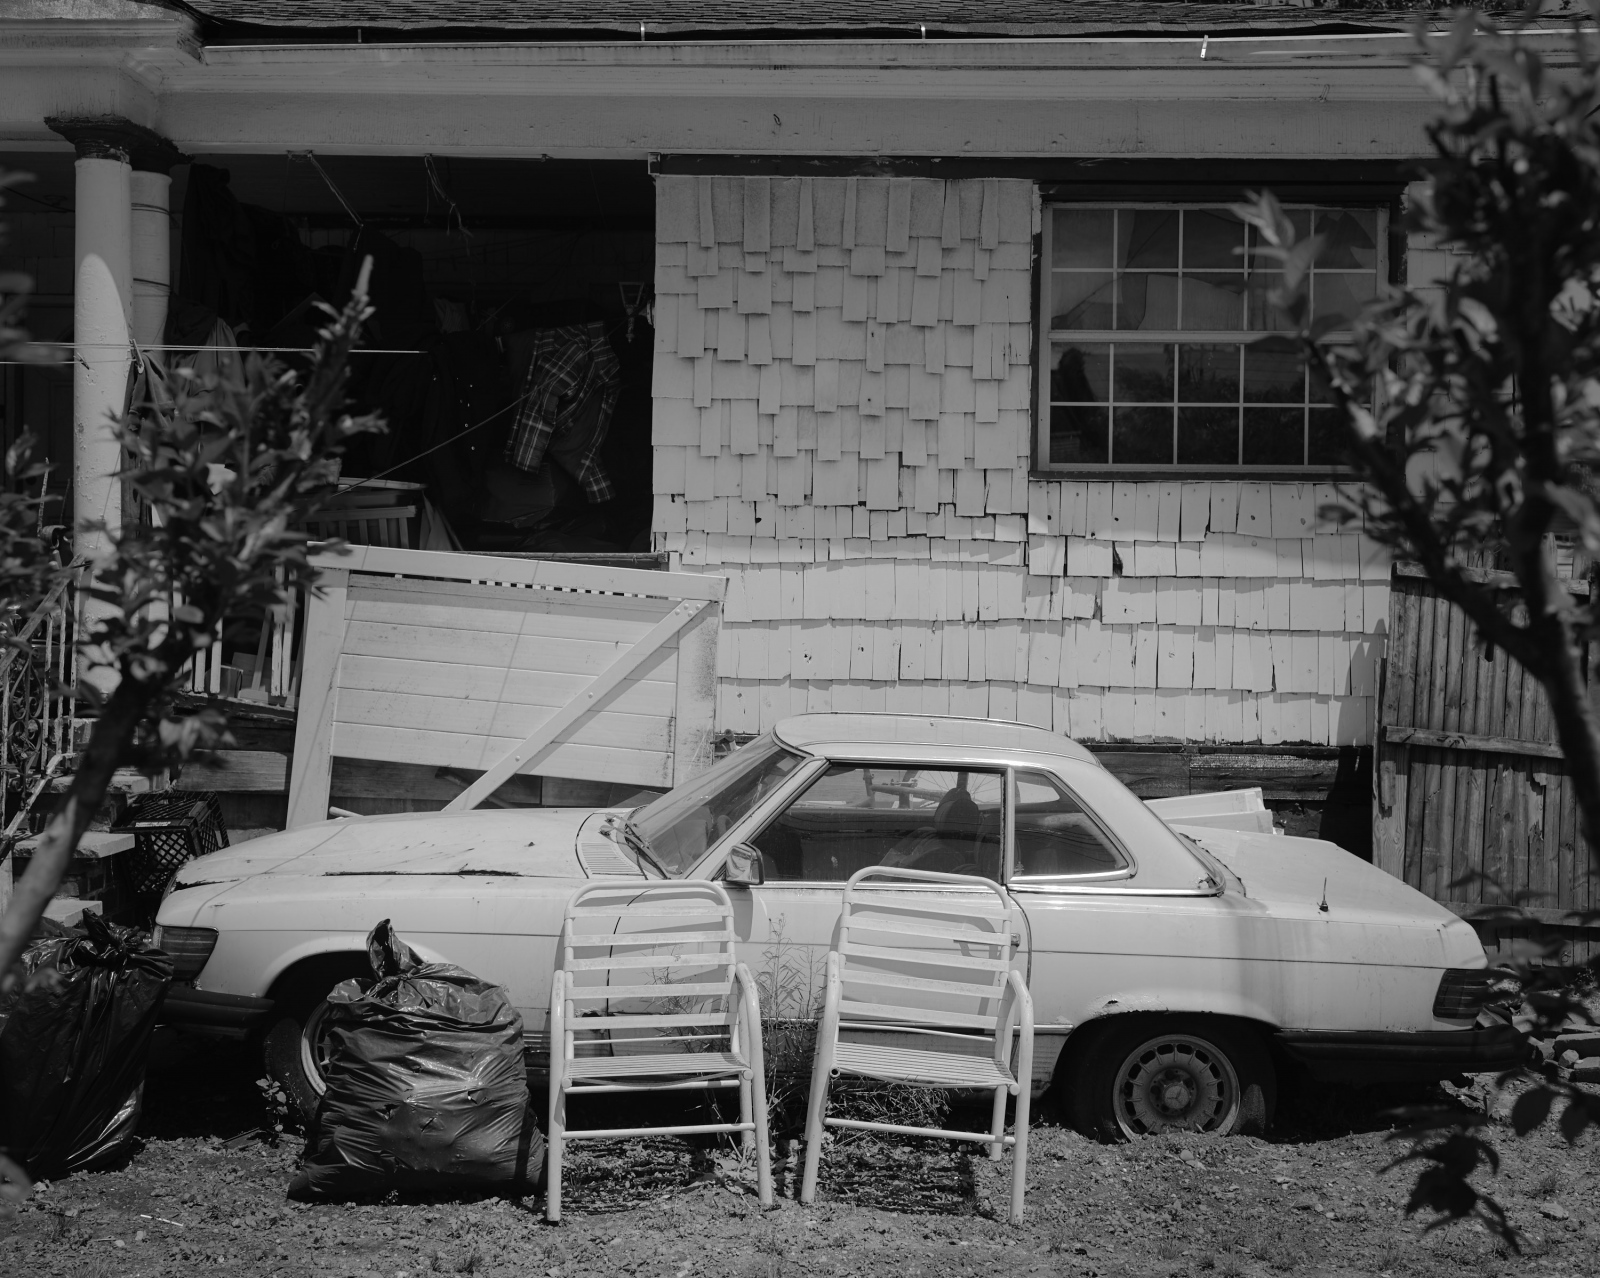 A broken car parked in the porch. Even though most all the houses are already repaired or demolished and rebuild, there are still some people that never throw away their most precious belongings.